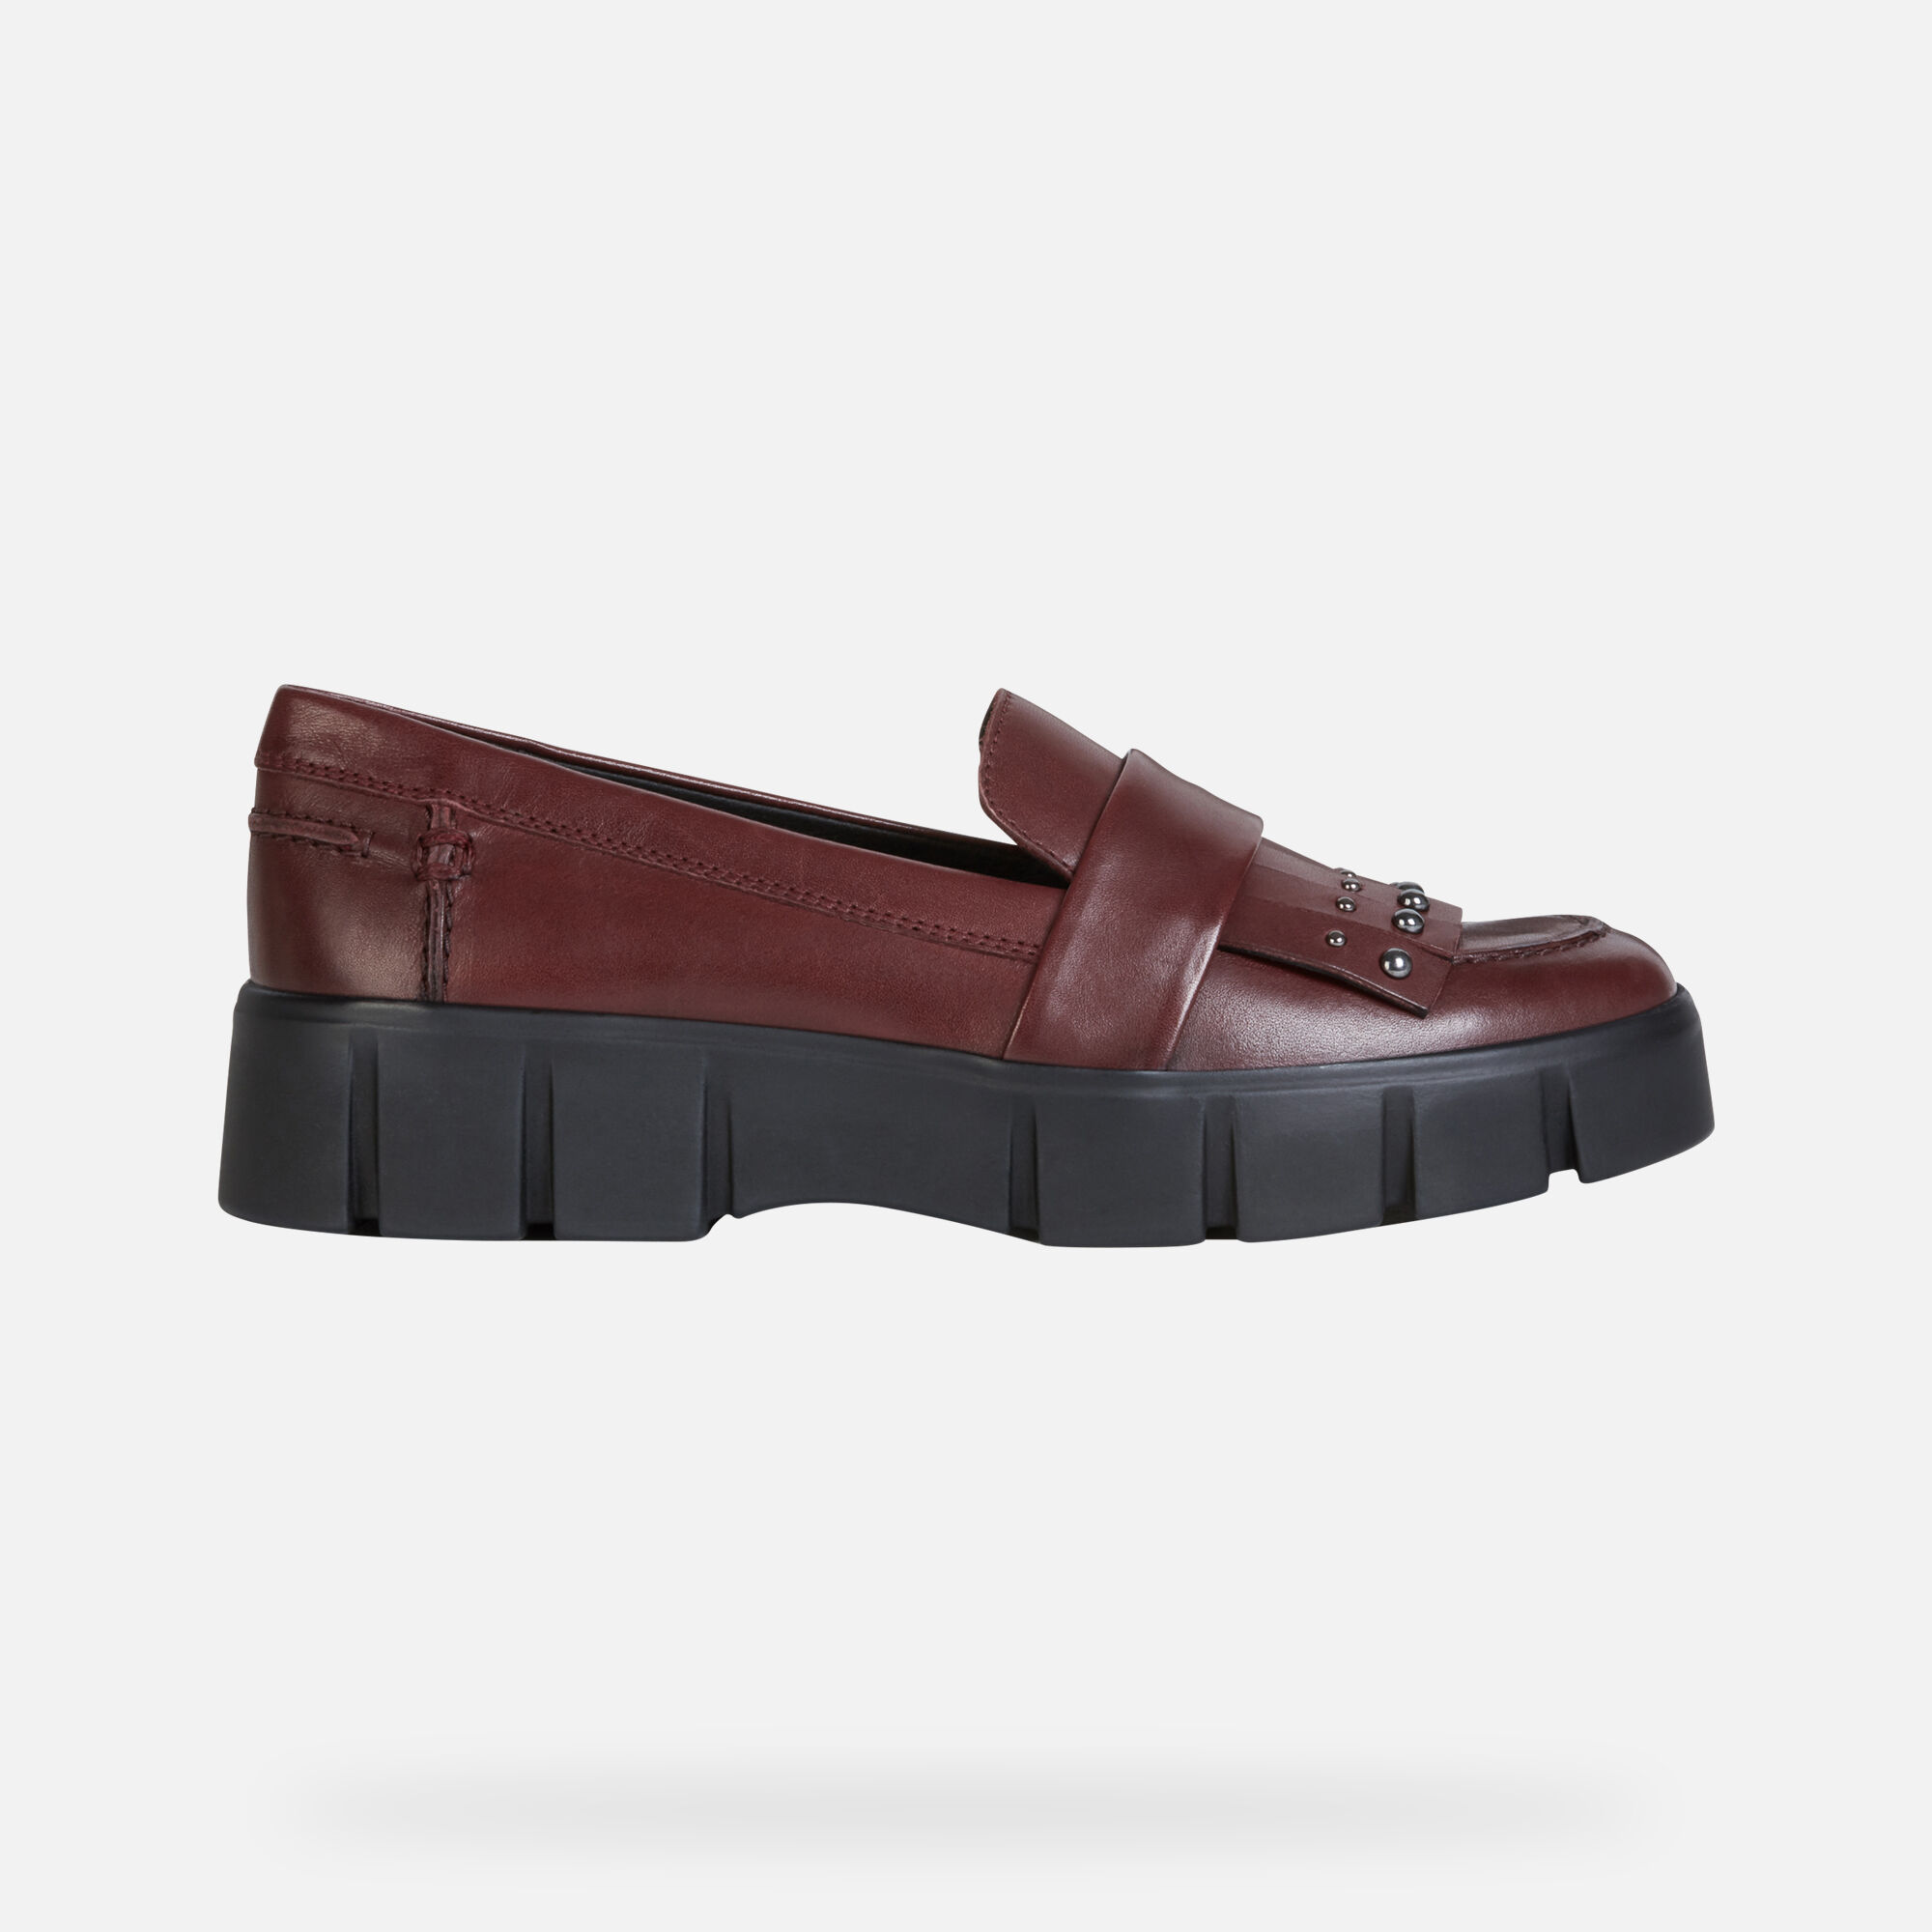 Geox GHOULA Woman: Bordeaux Shoes   Geox Fall Winter